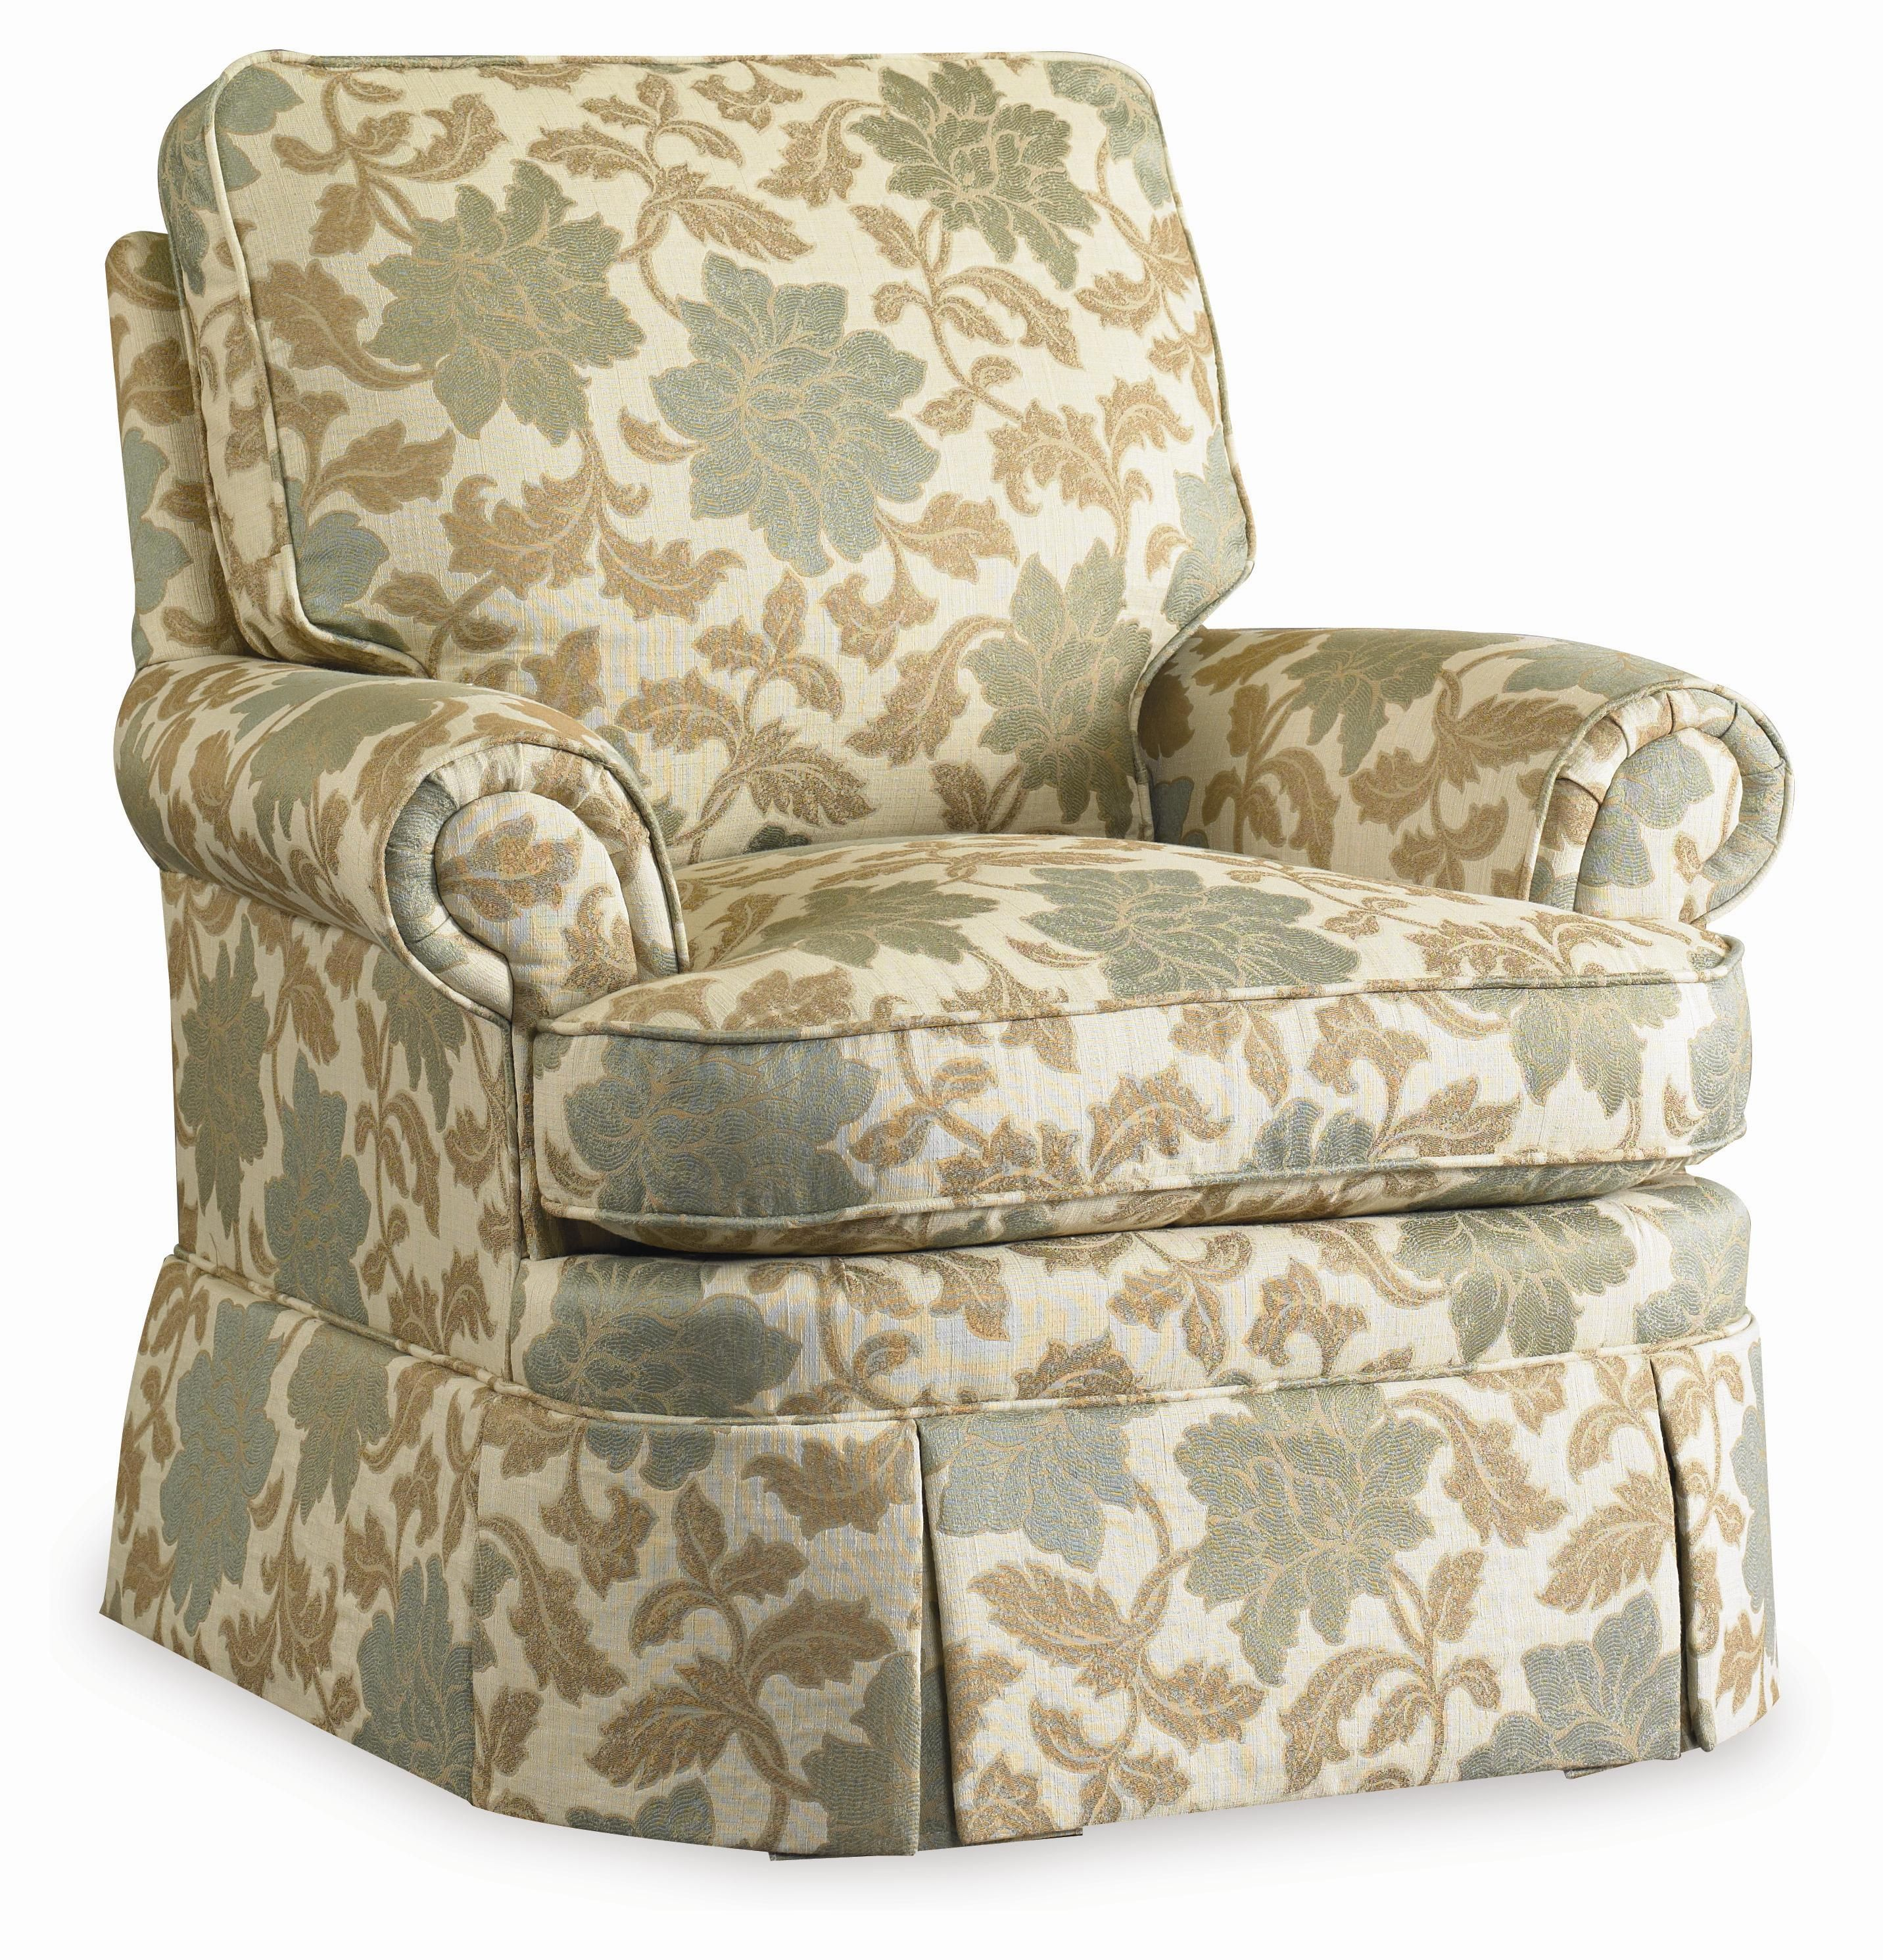 Brookville Swivel Glider By Sam Moore Lori Master Chair Pinterest Gliders Sunroom And